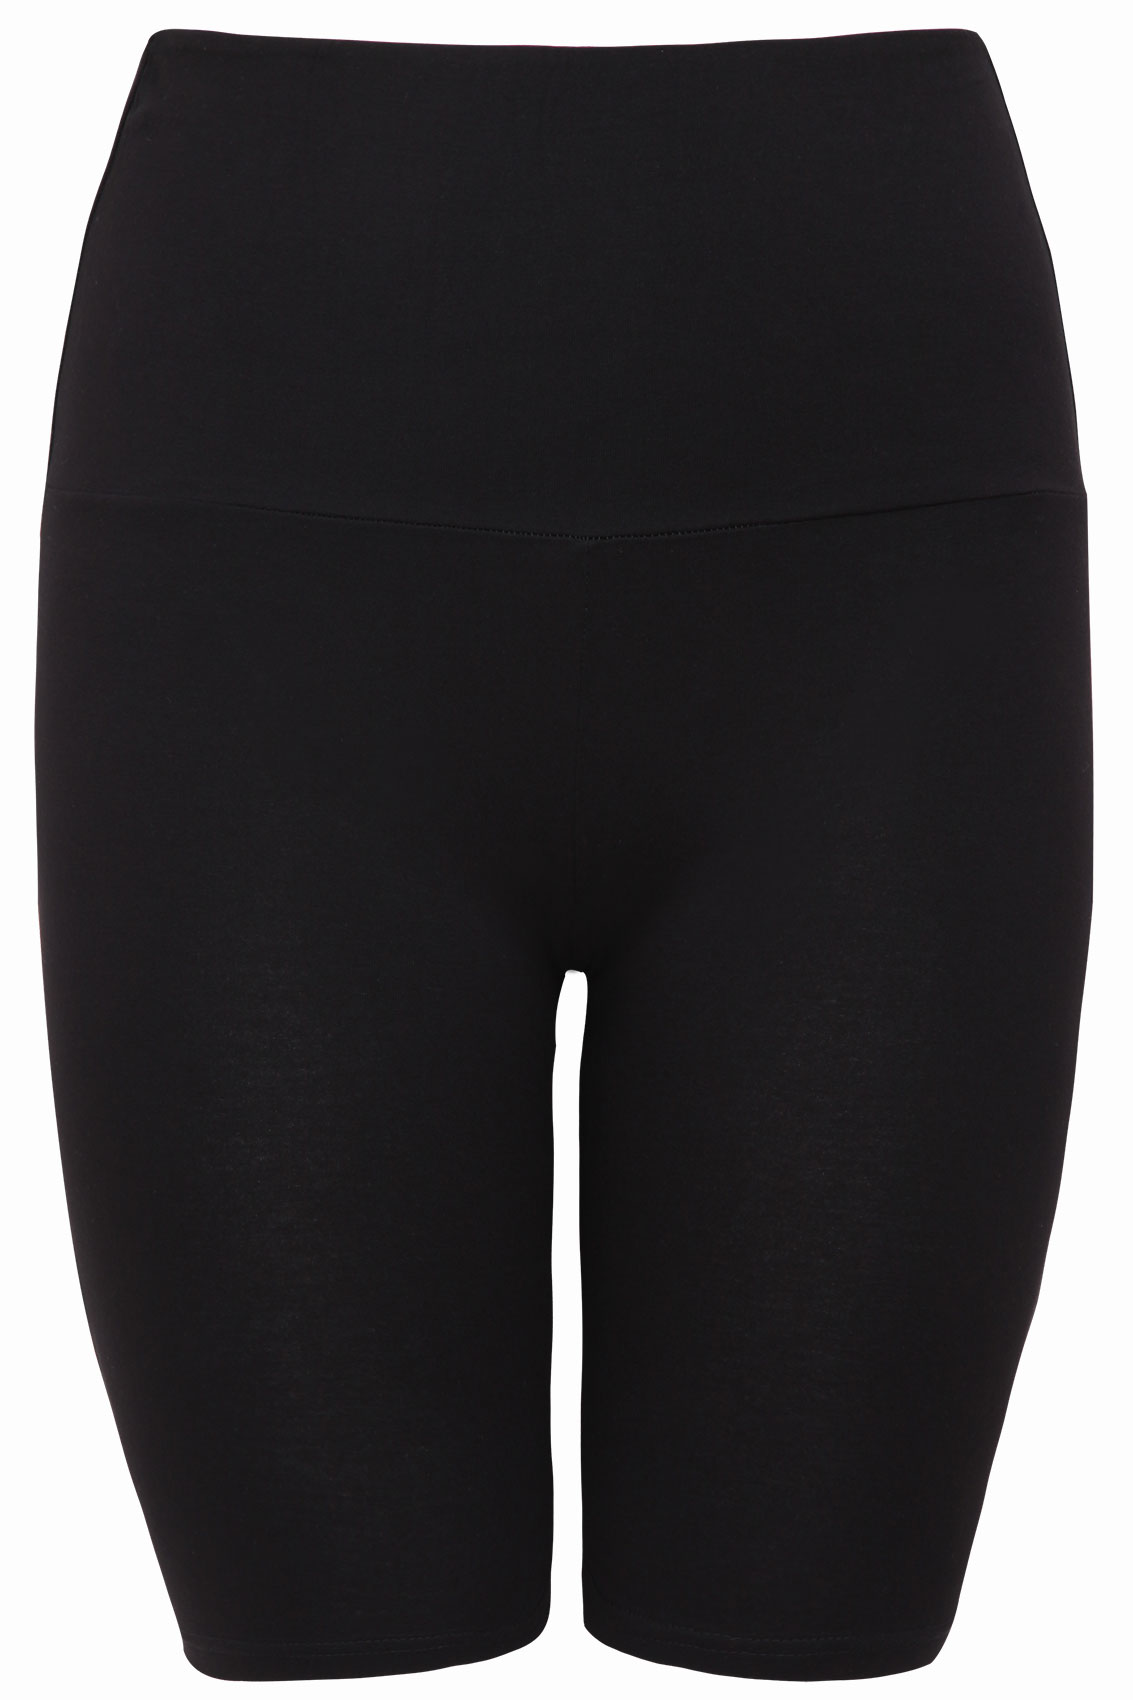 black tummy control soft touch legging shorts  plus size